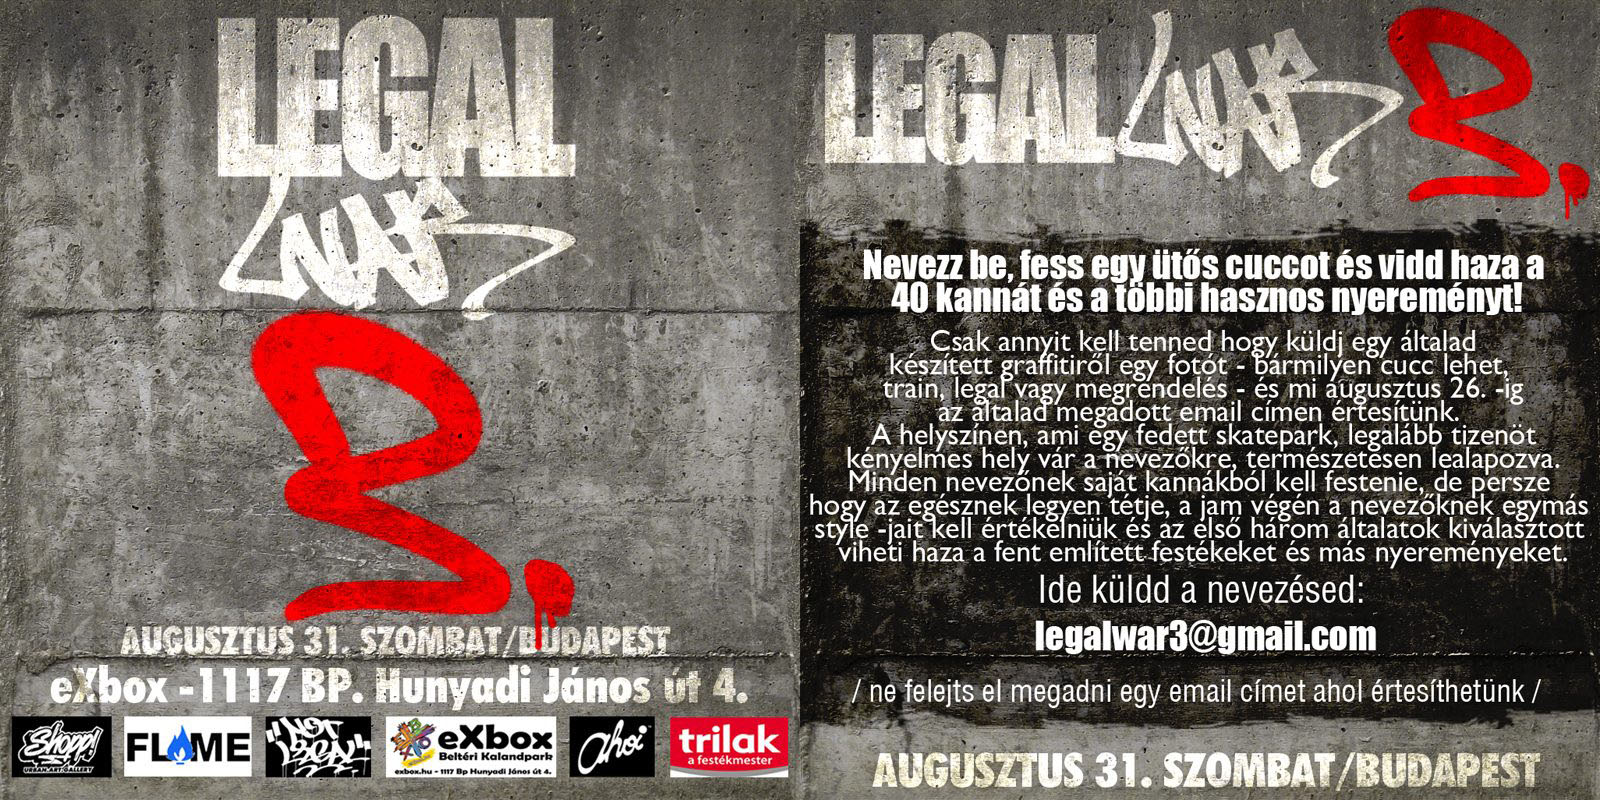 legal-war-3-graffiti-stylebattle.jpg